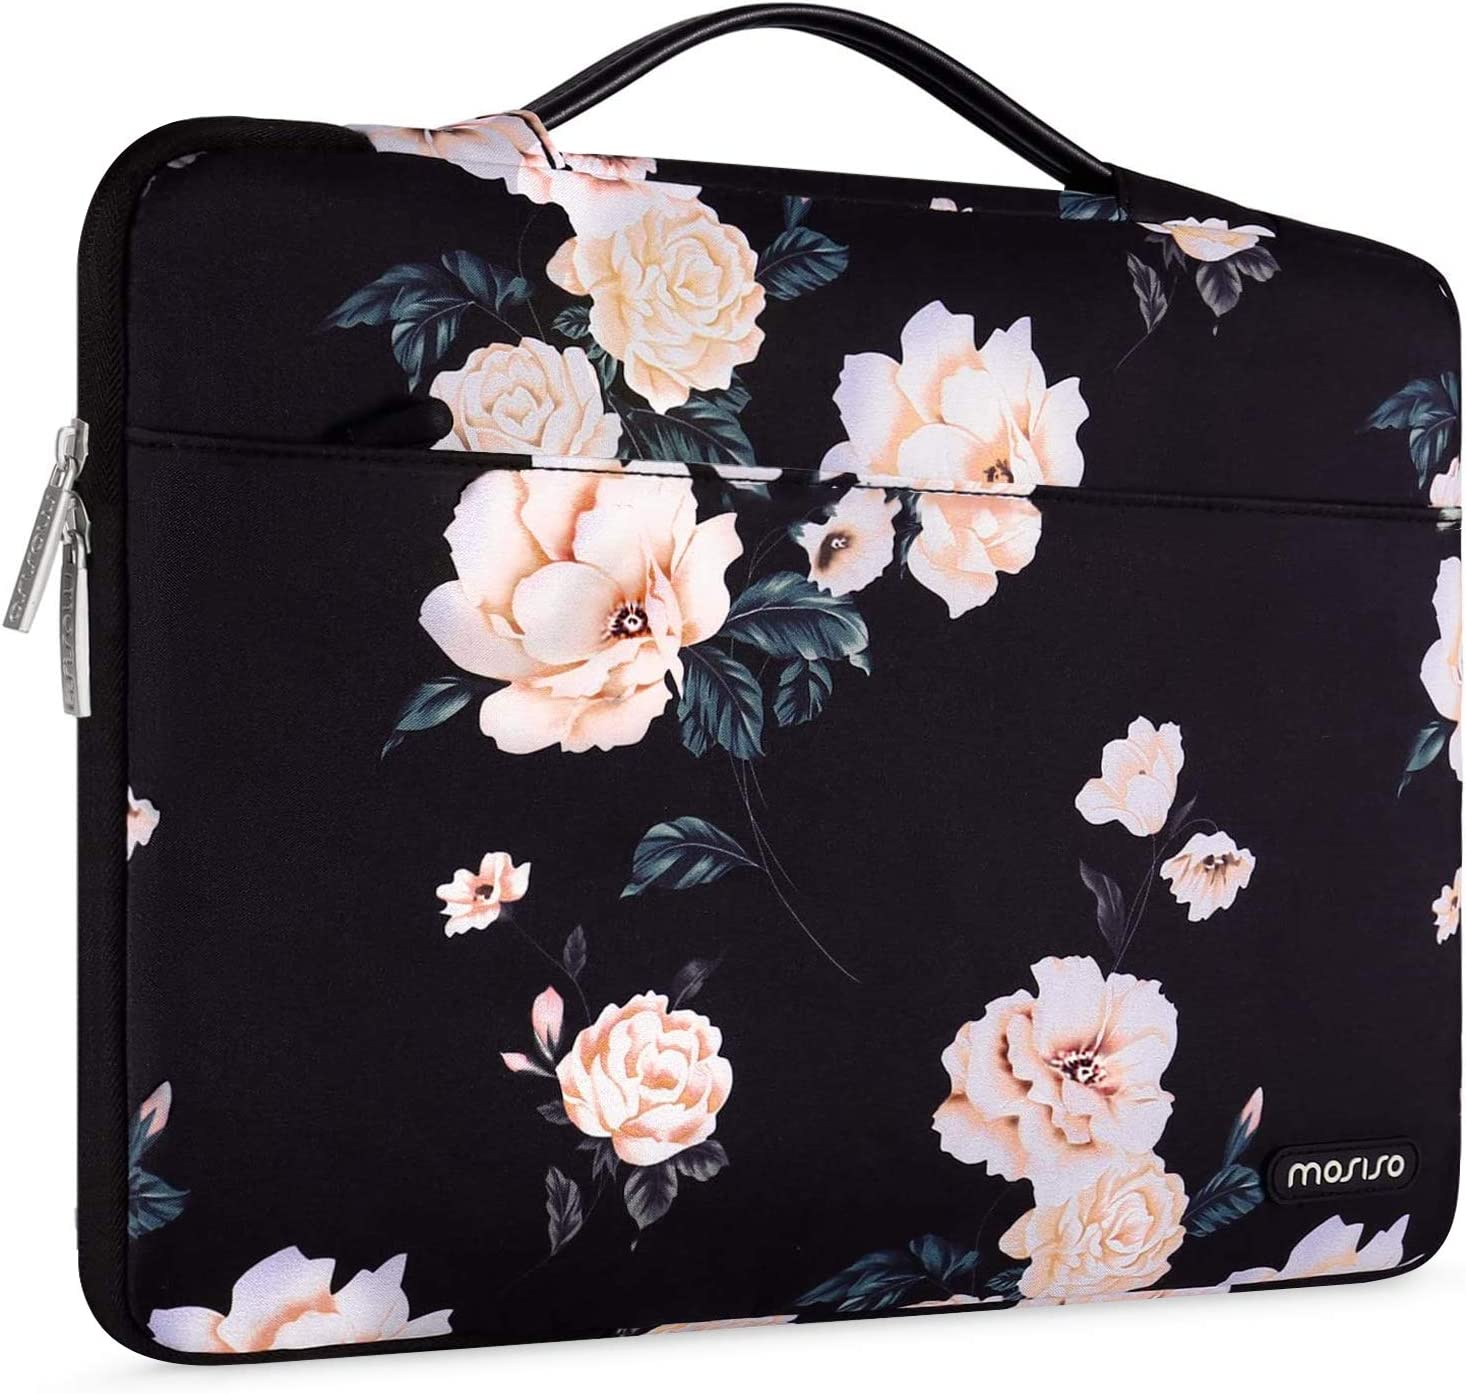 MOSISO Laptop Sleeve 360 Protective Case Bag Compatible with 13-13.3 inch MacBook Pro, MacBook Air, Notebook, Polyester Pattern Shockproof Handbag with Trolley Belt, Apricot Peony